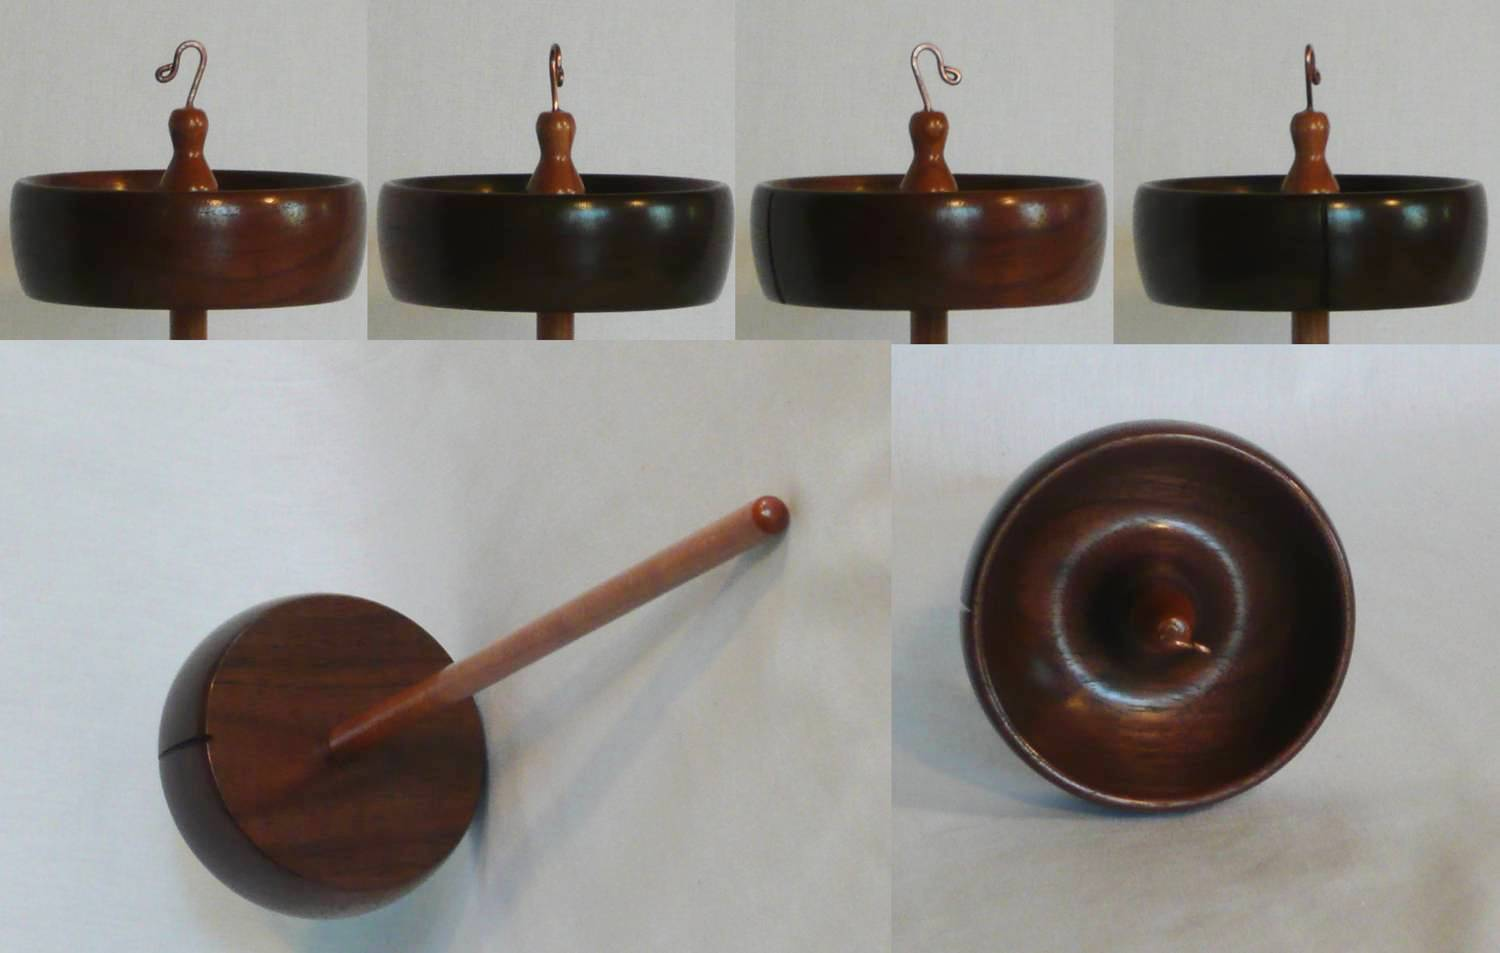 Walnut and Cherry high whorl drop spindle for spinning yarn from wool.  Handturned by Cynthia D. Haney weight 2 oz.